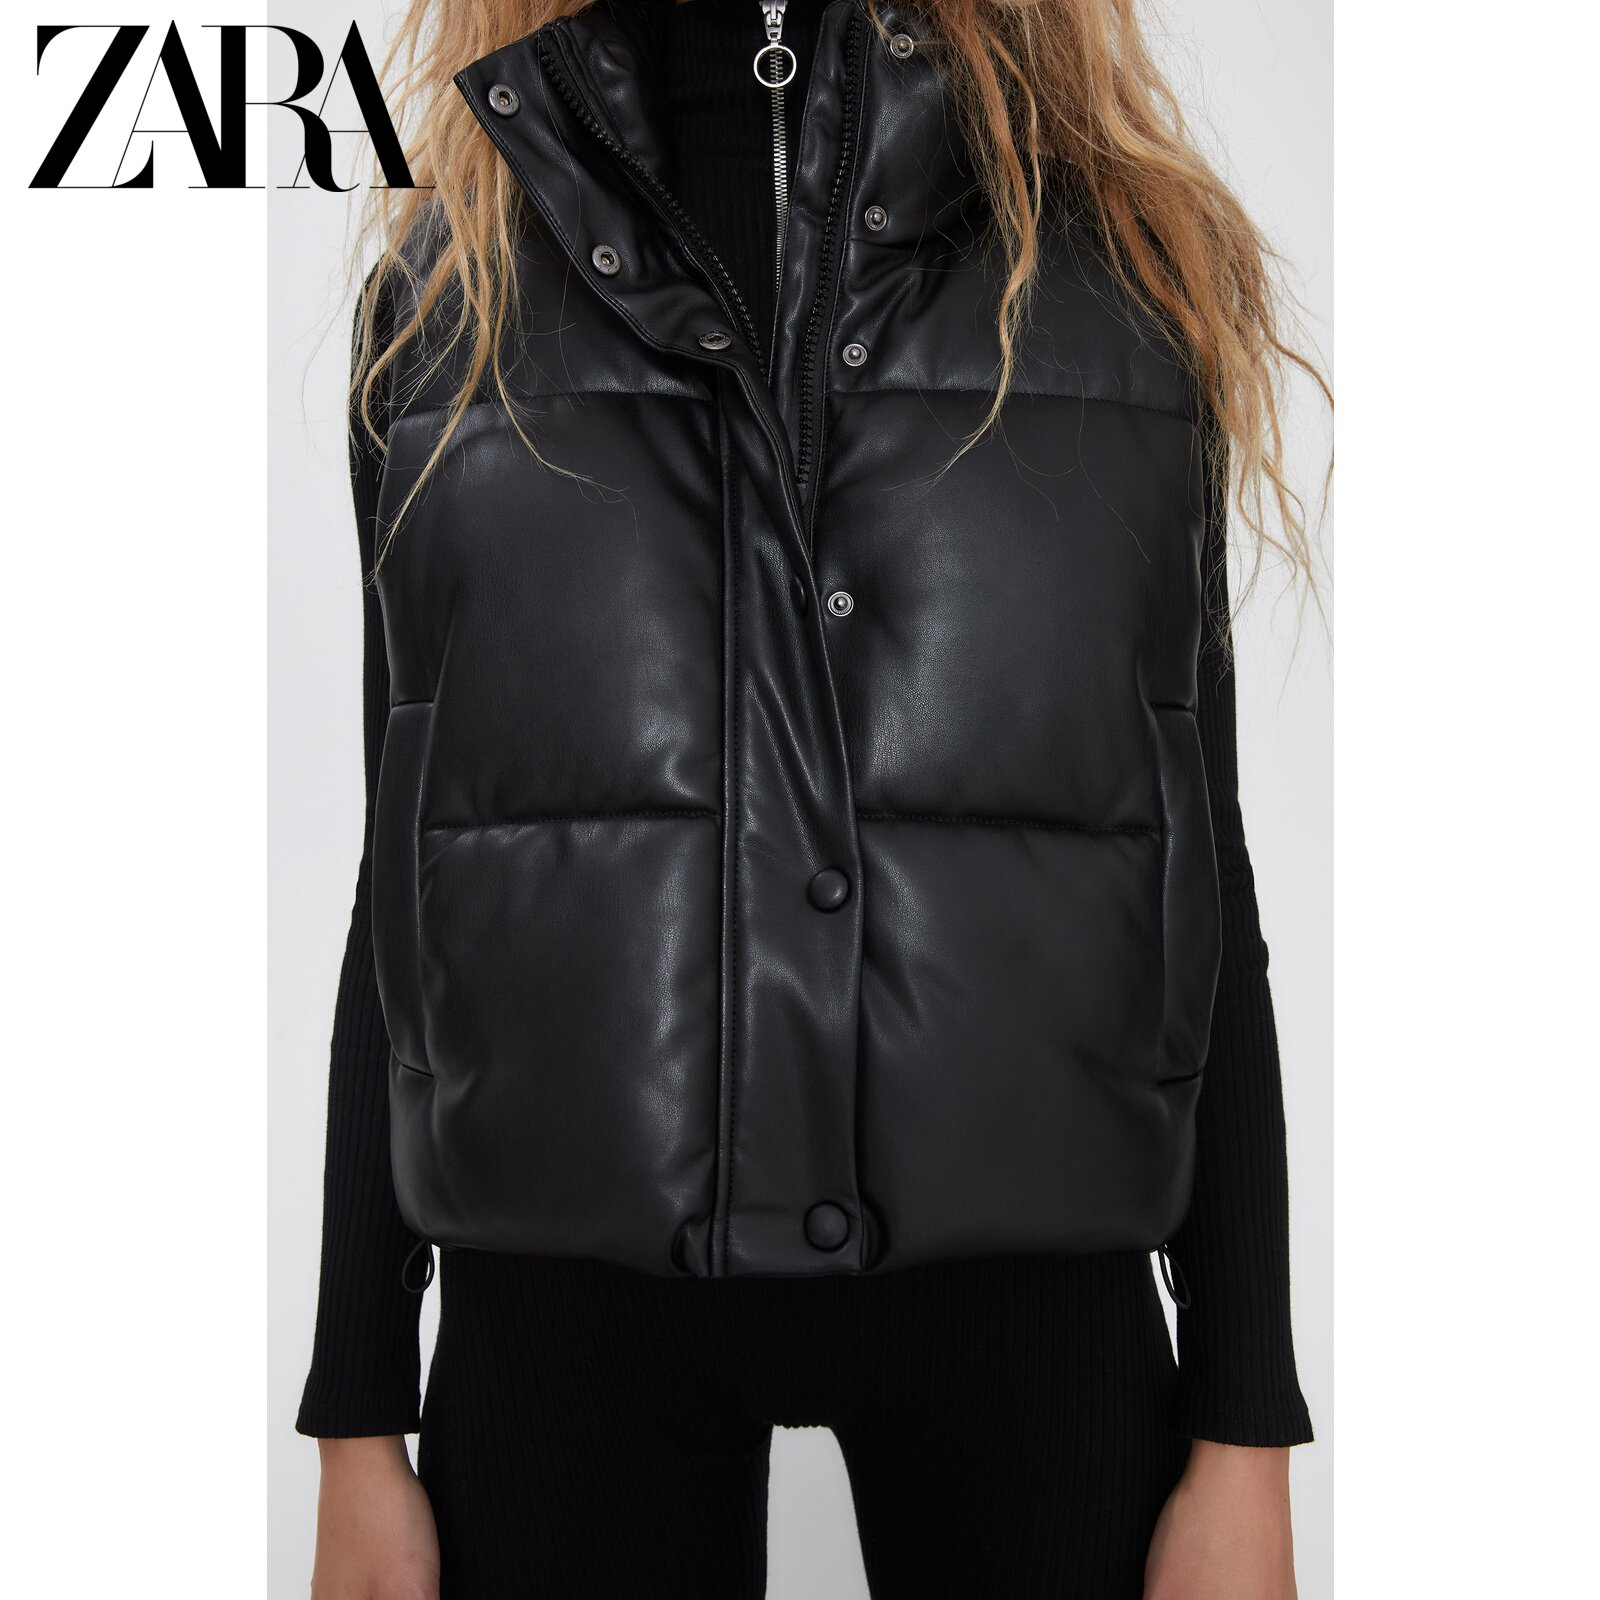 ZARA new TRF women's clothing leather texture effect cotton vest 04341776800